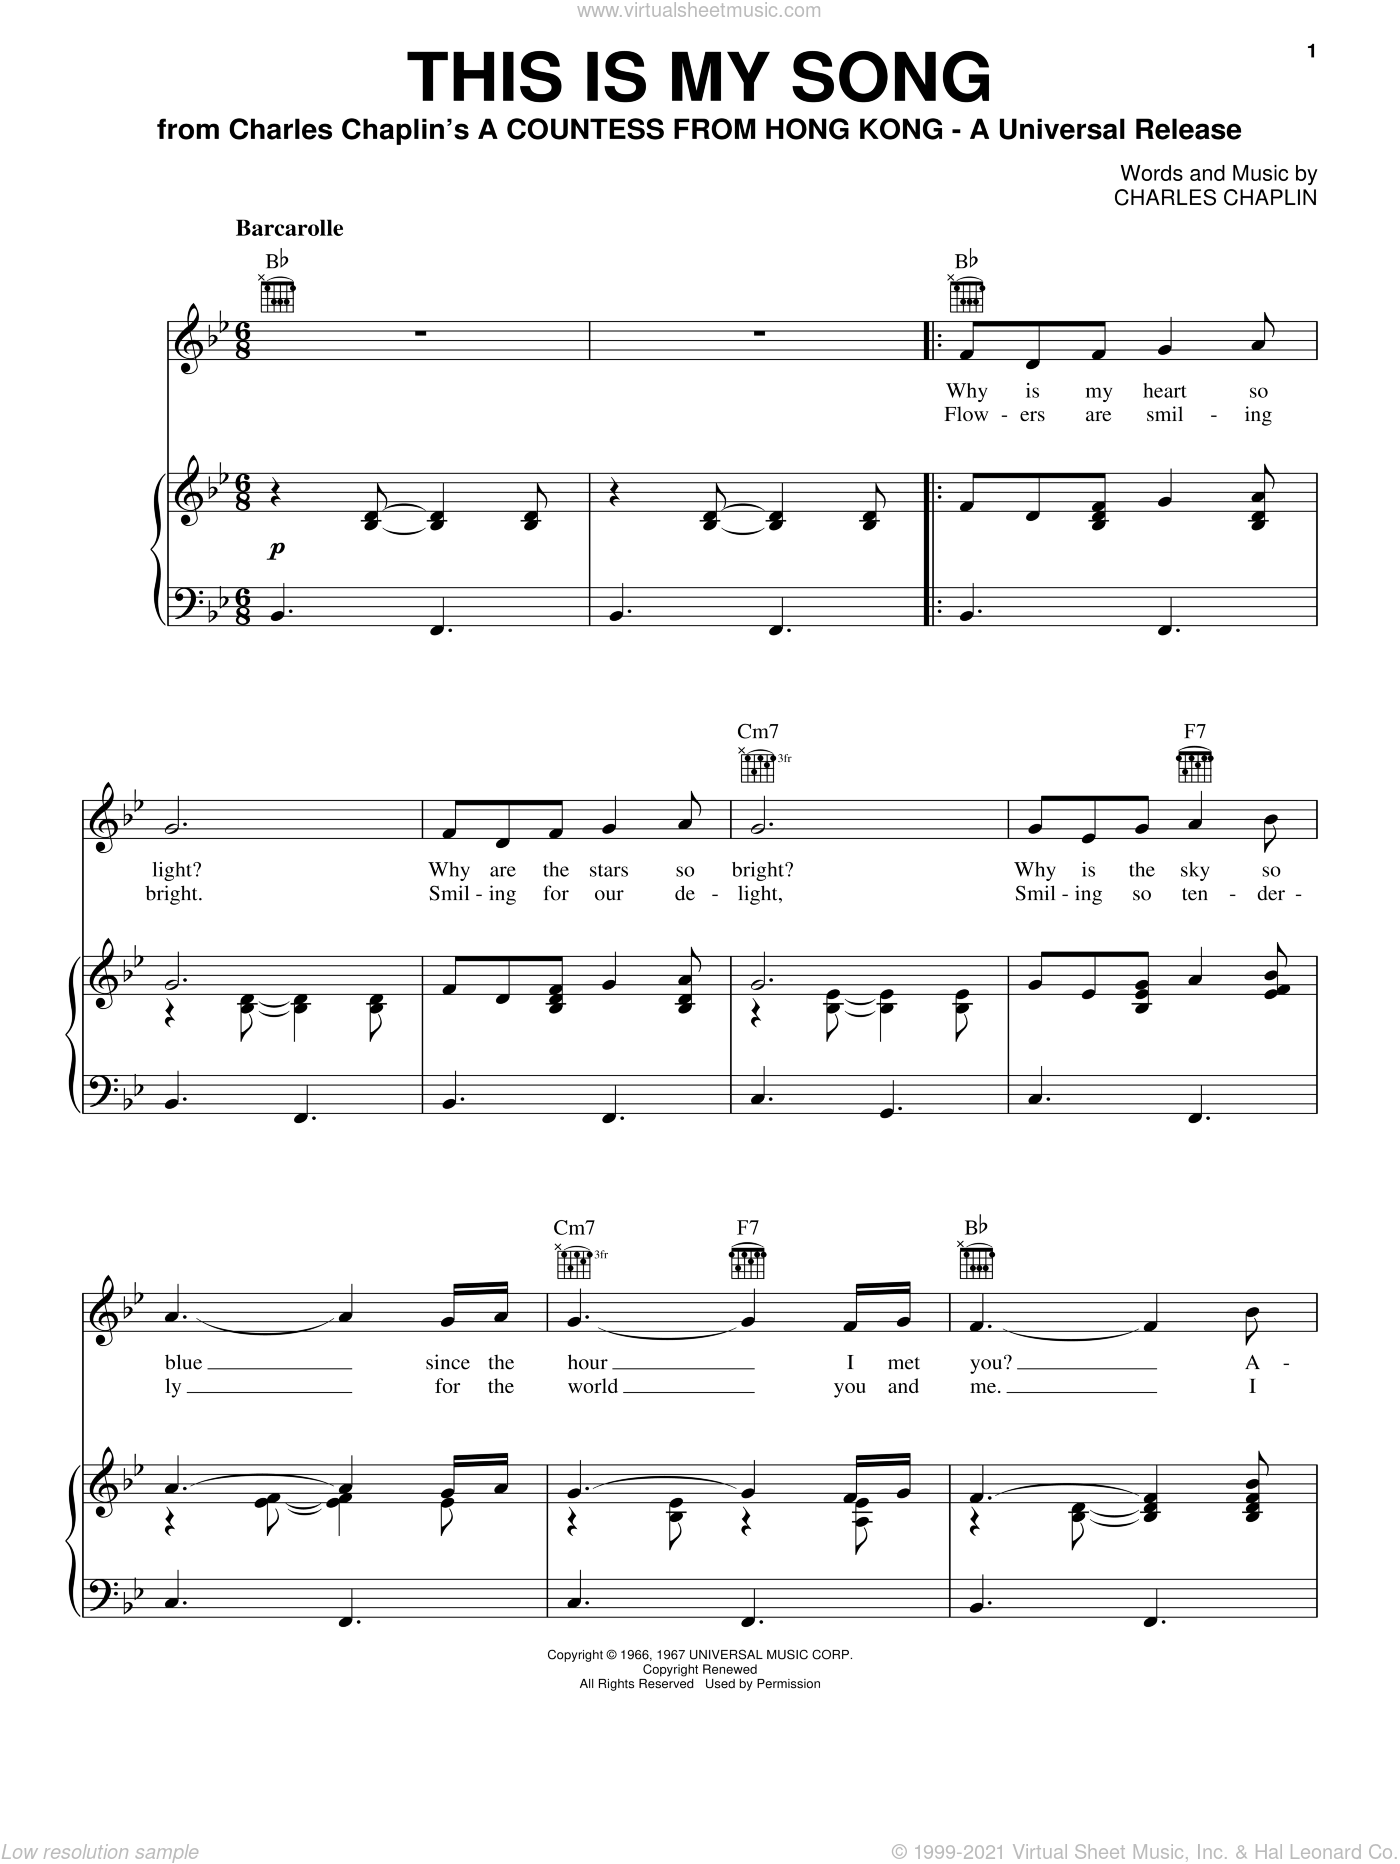 This Is My Song sheet music for voice, piano or guitar by Charles Chaplin